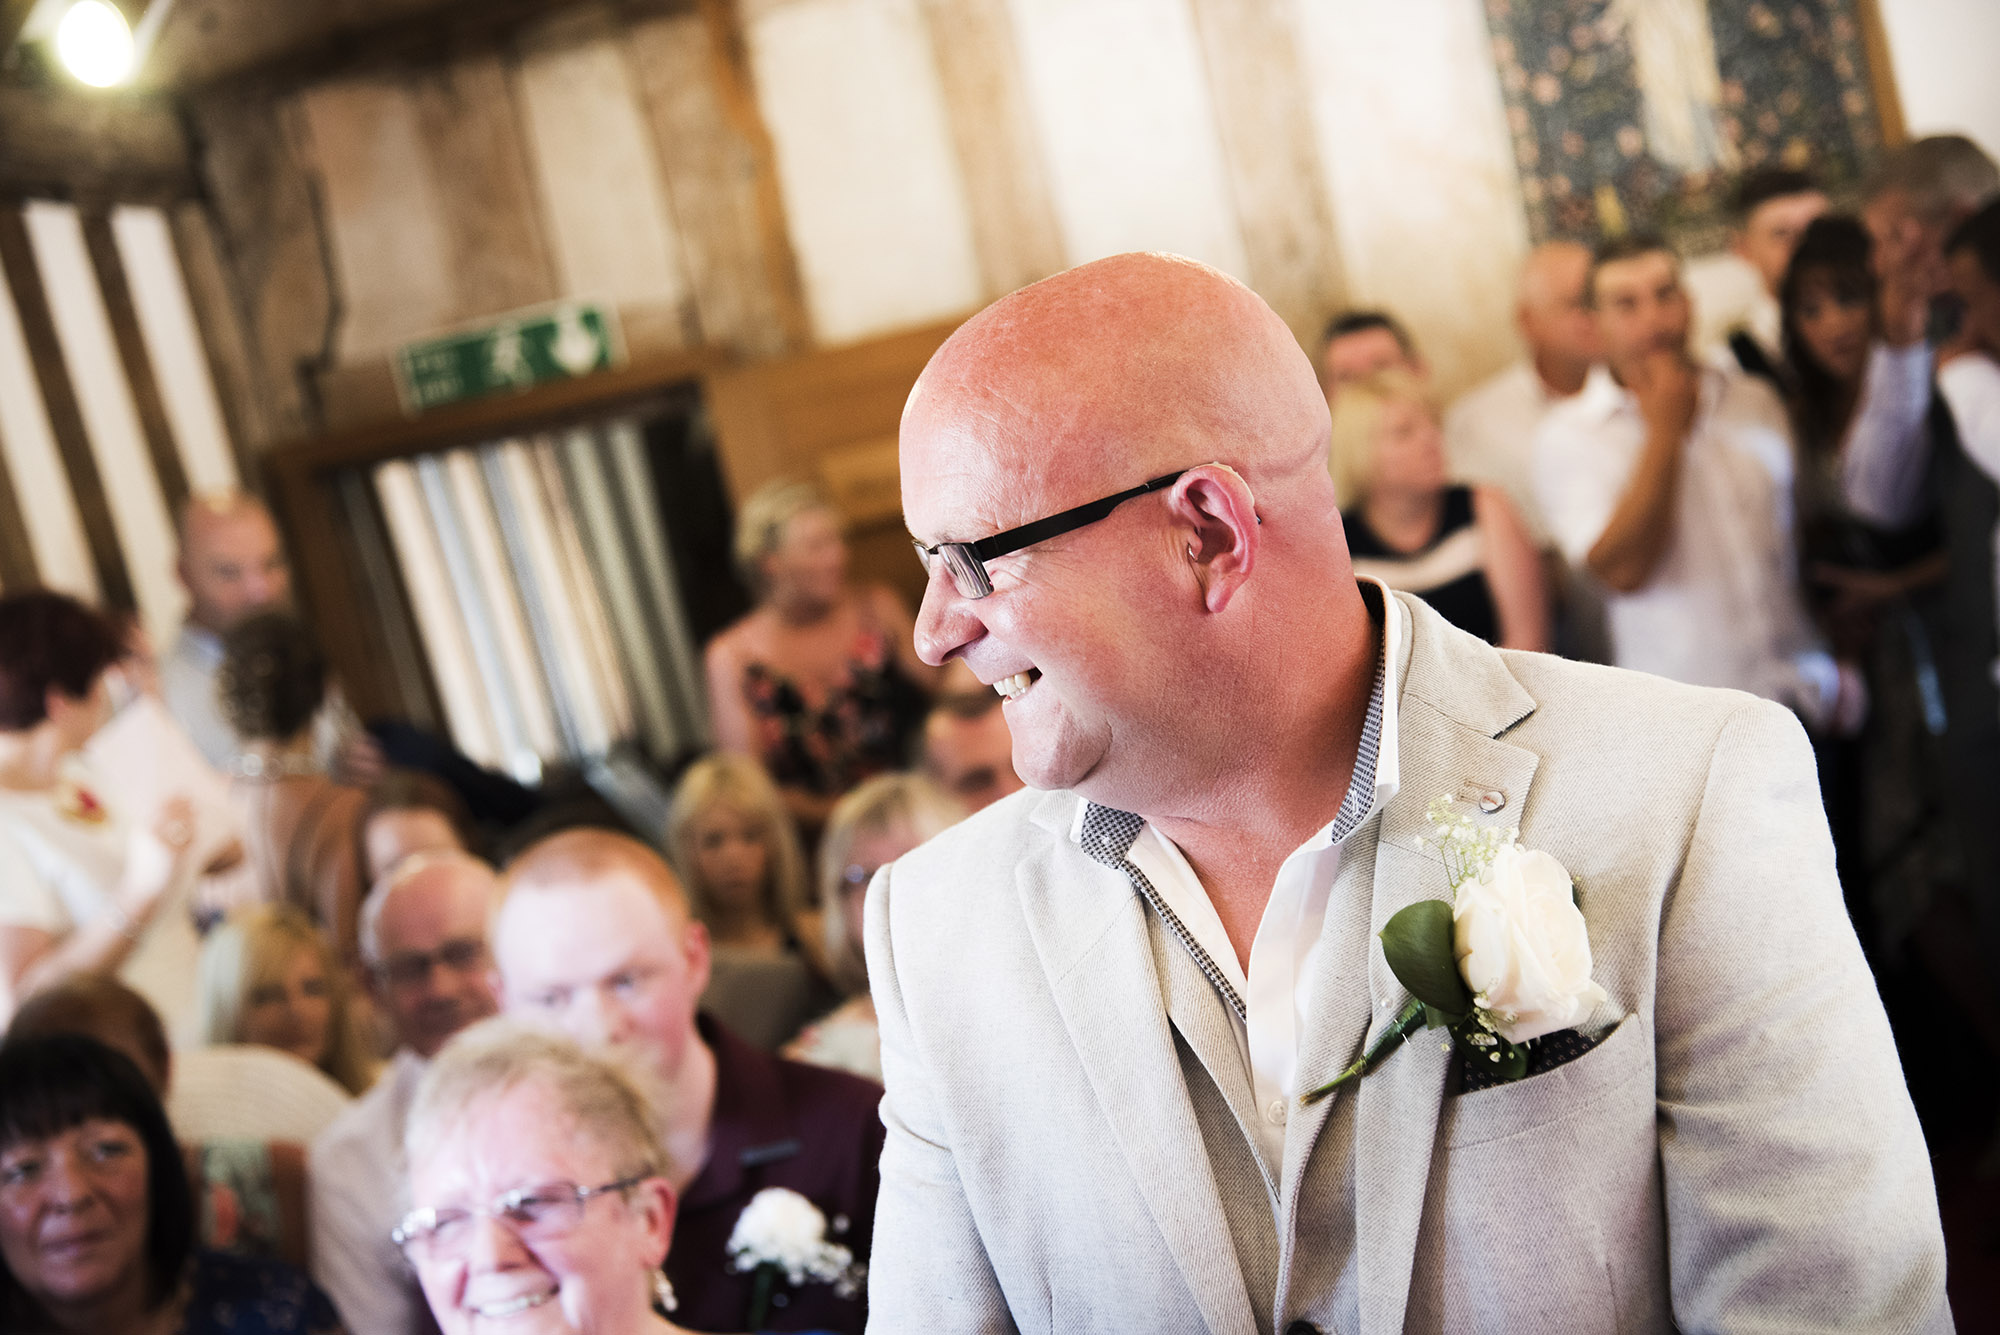 Coventry Wedding Photographer AJTImages at Cheylesmore Manor House